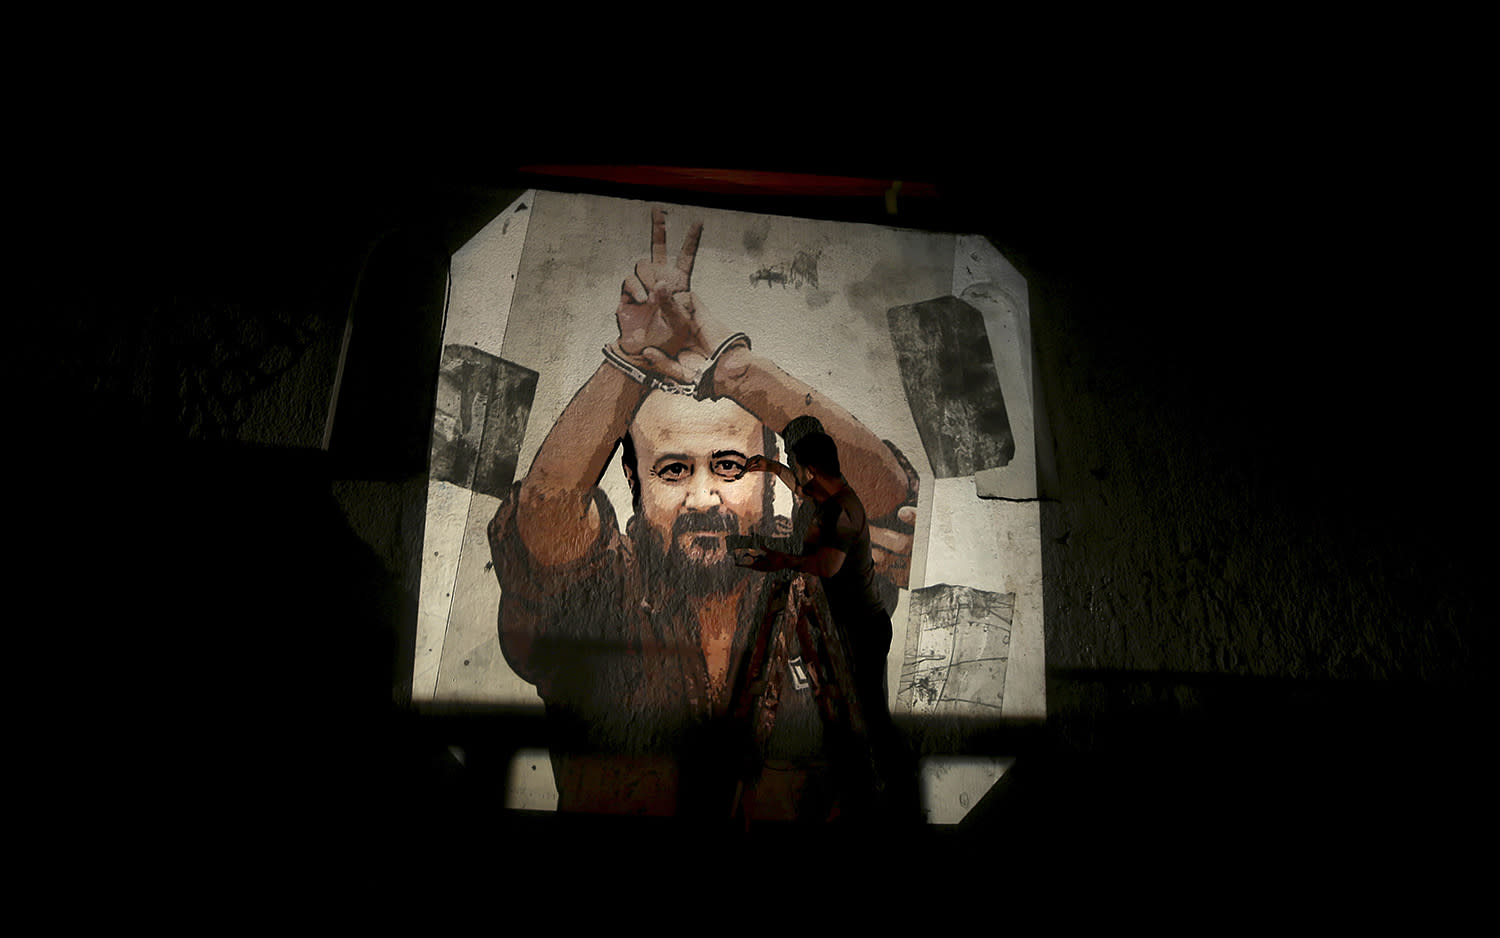 <p>A Palestinian paints an image depicting Palestinian leader and prominent prisoner Marwan Barghouti on a wall on the streets of Gaza City, May 25, 2017. (Photo: Mohammed Saber/EPA) </p>